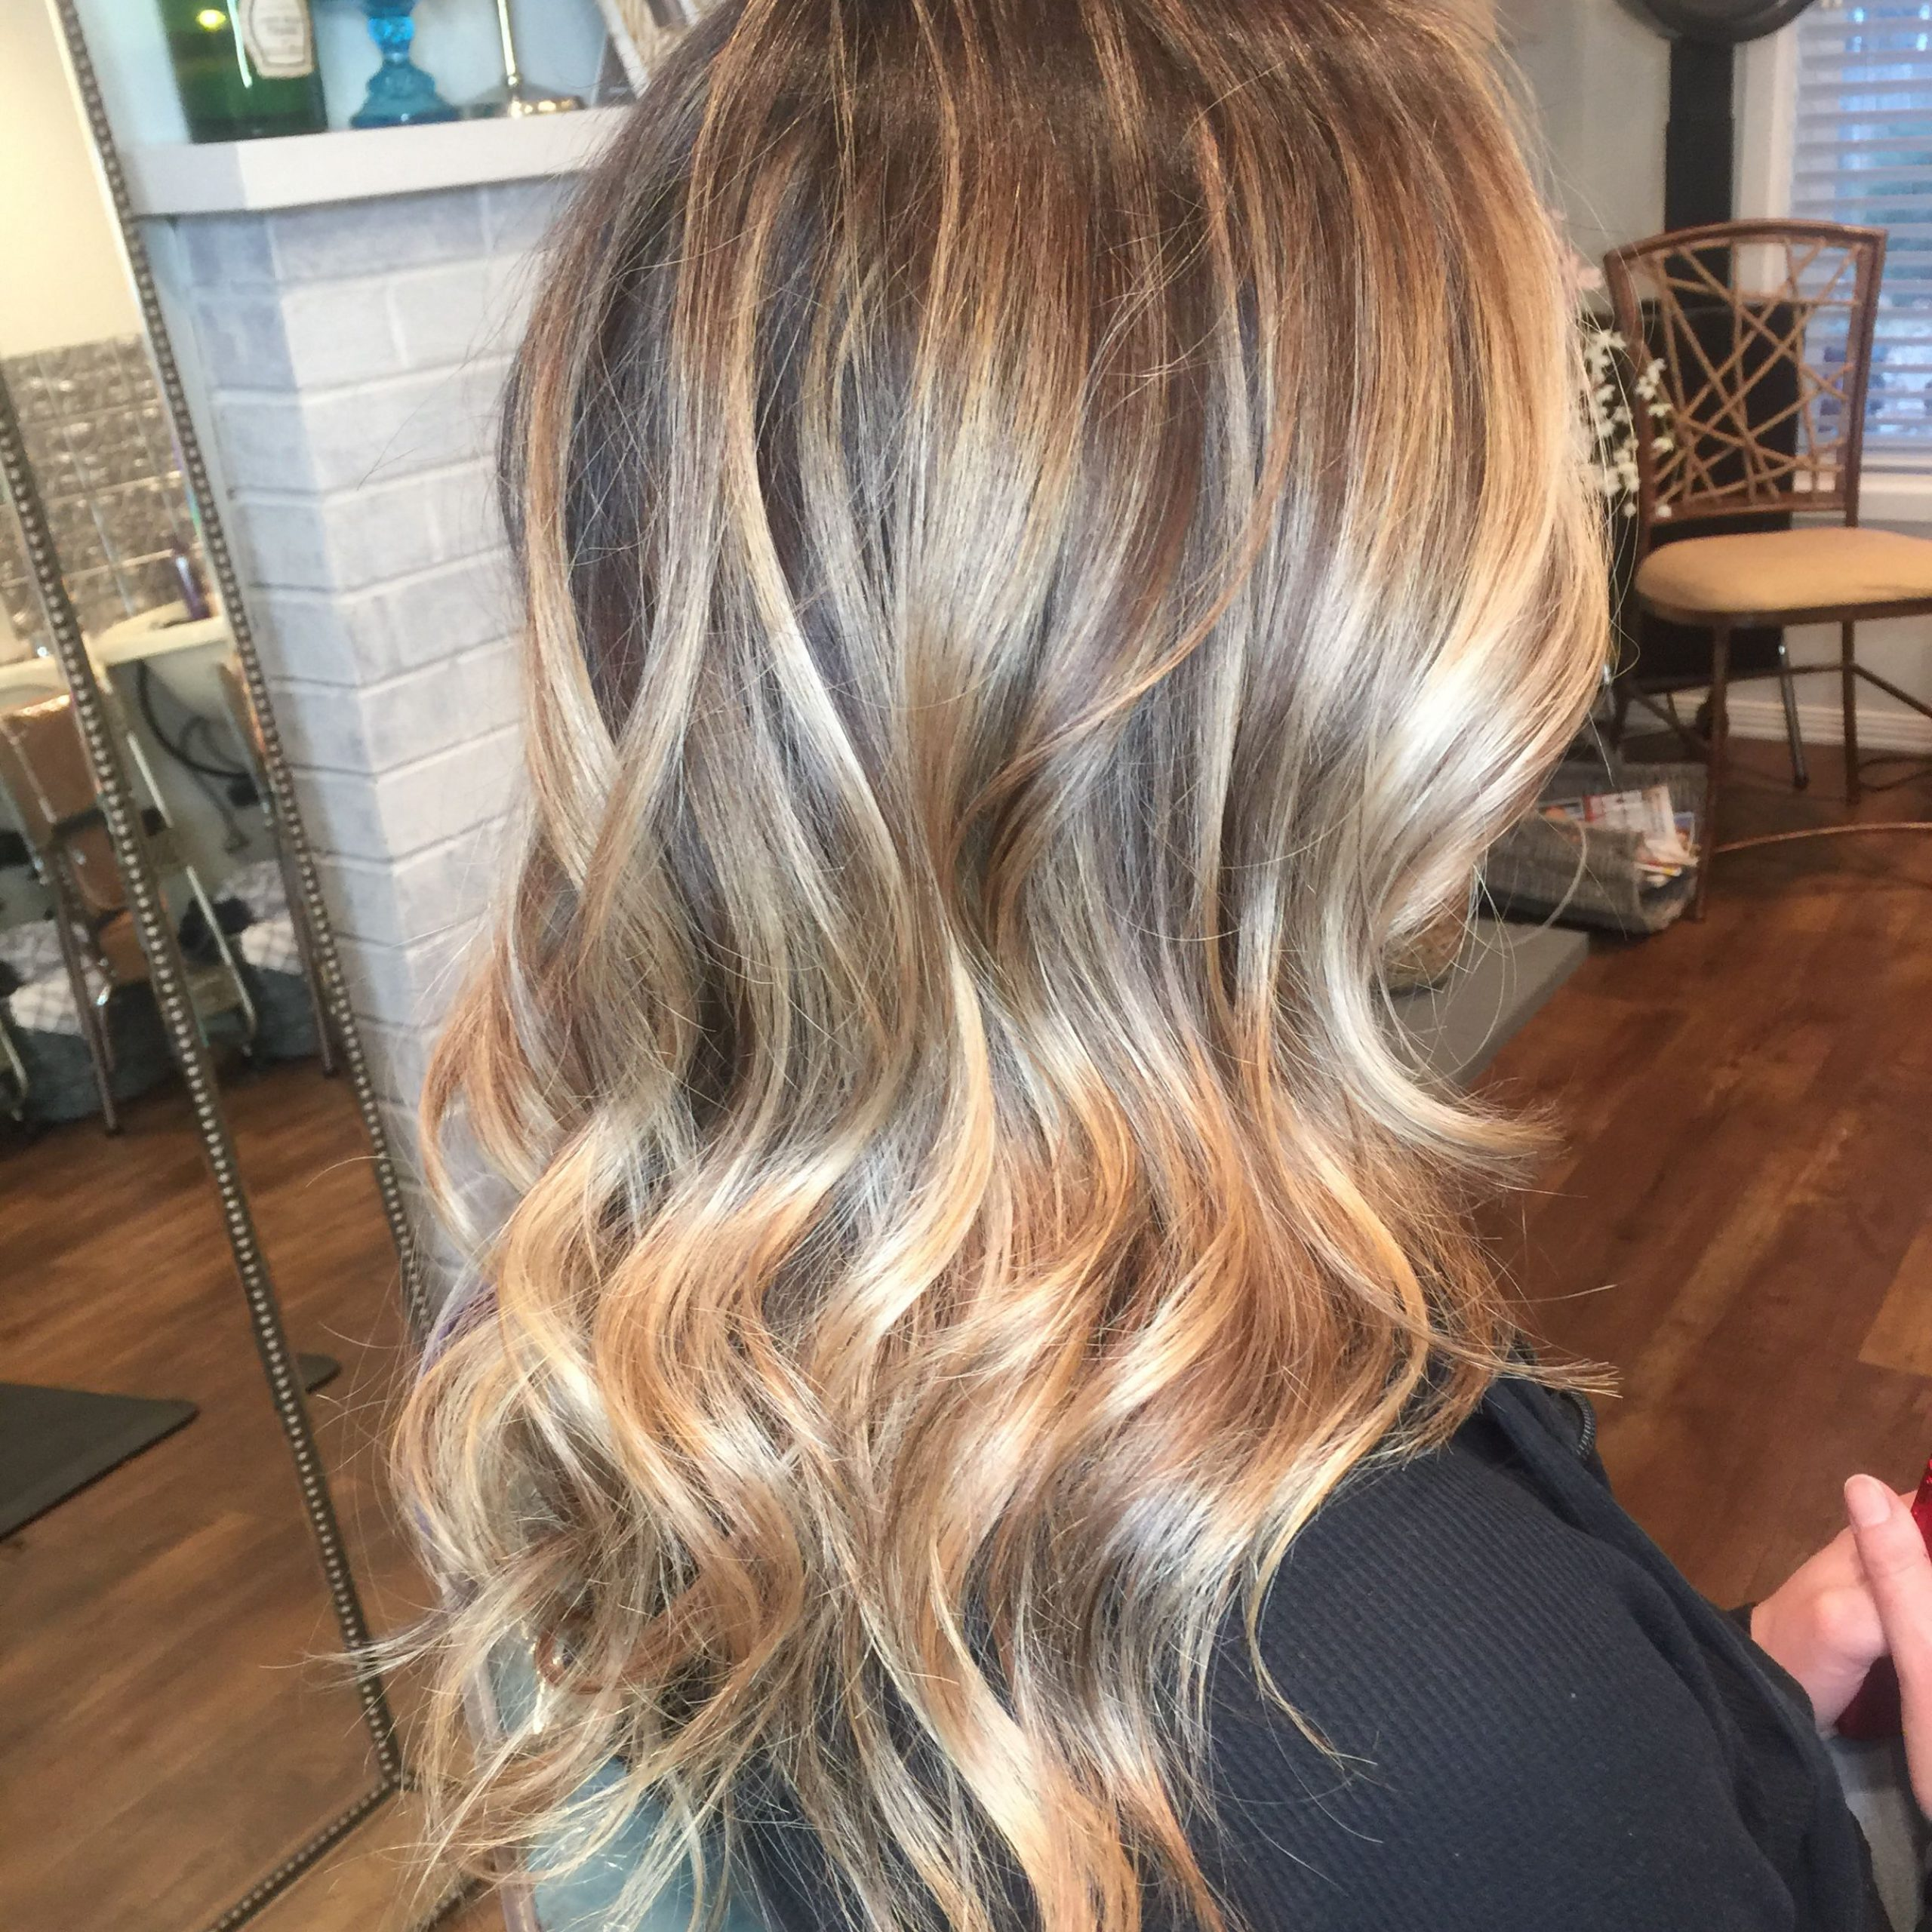 Most Current Golden Blonde Balayage On Long Curls Hairstyles With Regard To Golden Blonde Balayage Highlights @merakihairr Instagram (View 13 of 20)